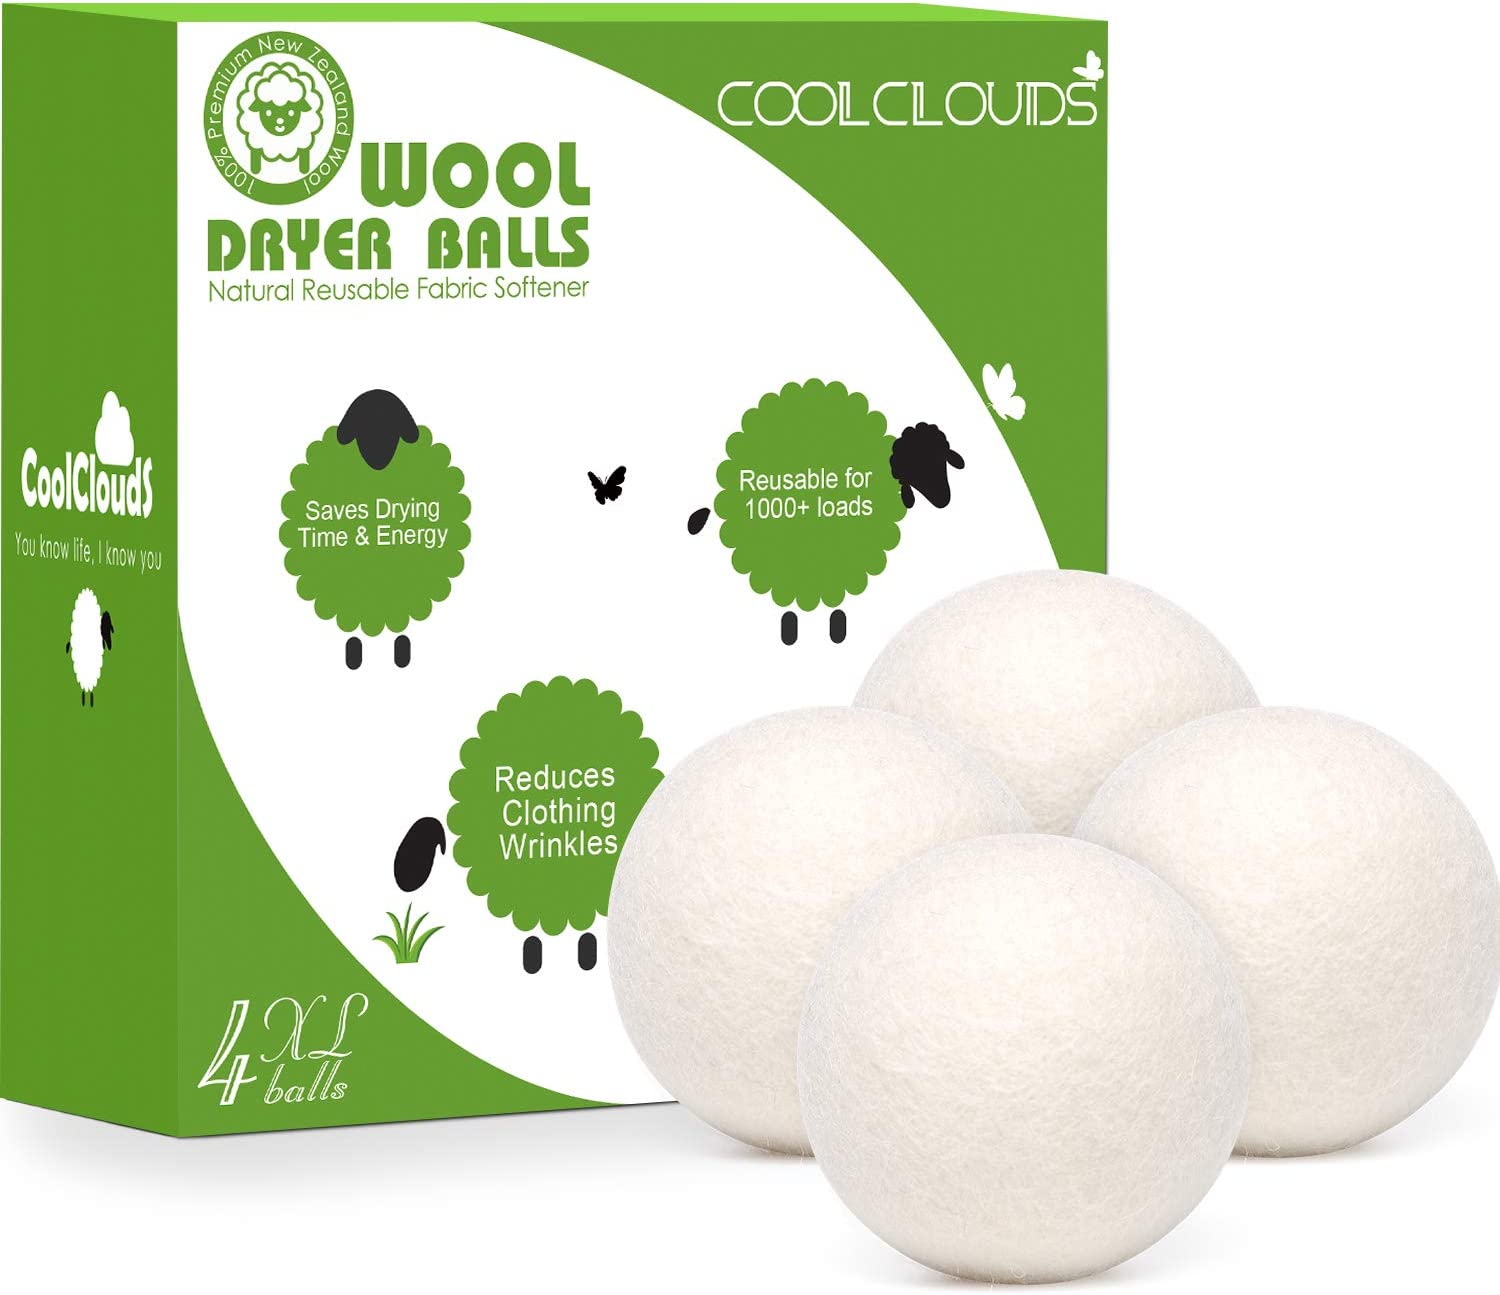 Wool Dryer Balls 4 Pack XL Natural Fabric Softener for Laundry - Reusable 100% Organic New Zealand Wool - Handmade Hypoallergenic Chemical Free - Reduces Wrinkles - Saving Time and Energy.